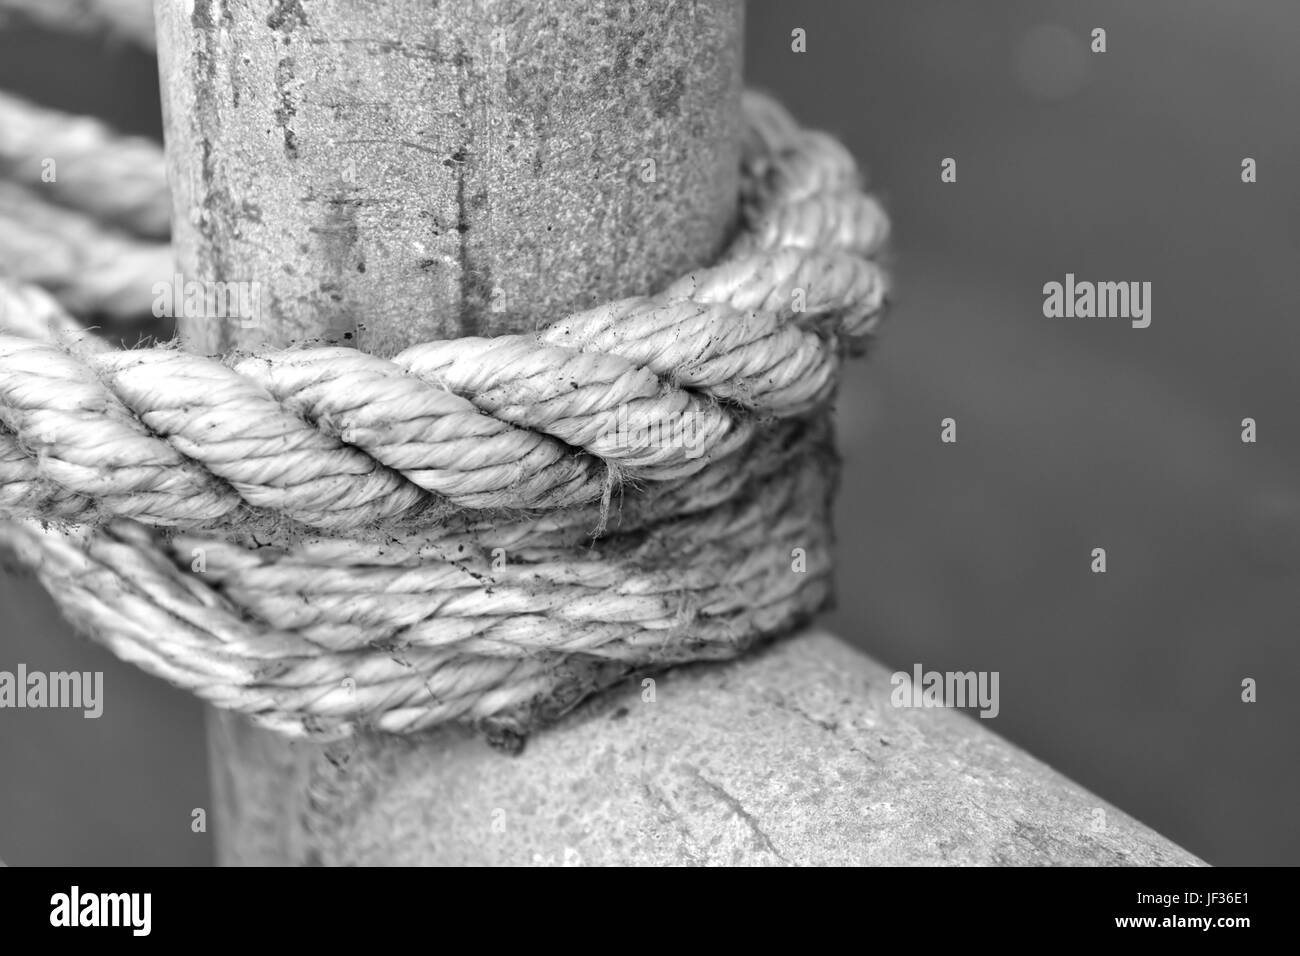 used rope tight around a wooden pole - Stock Image